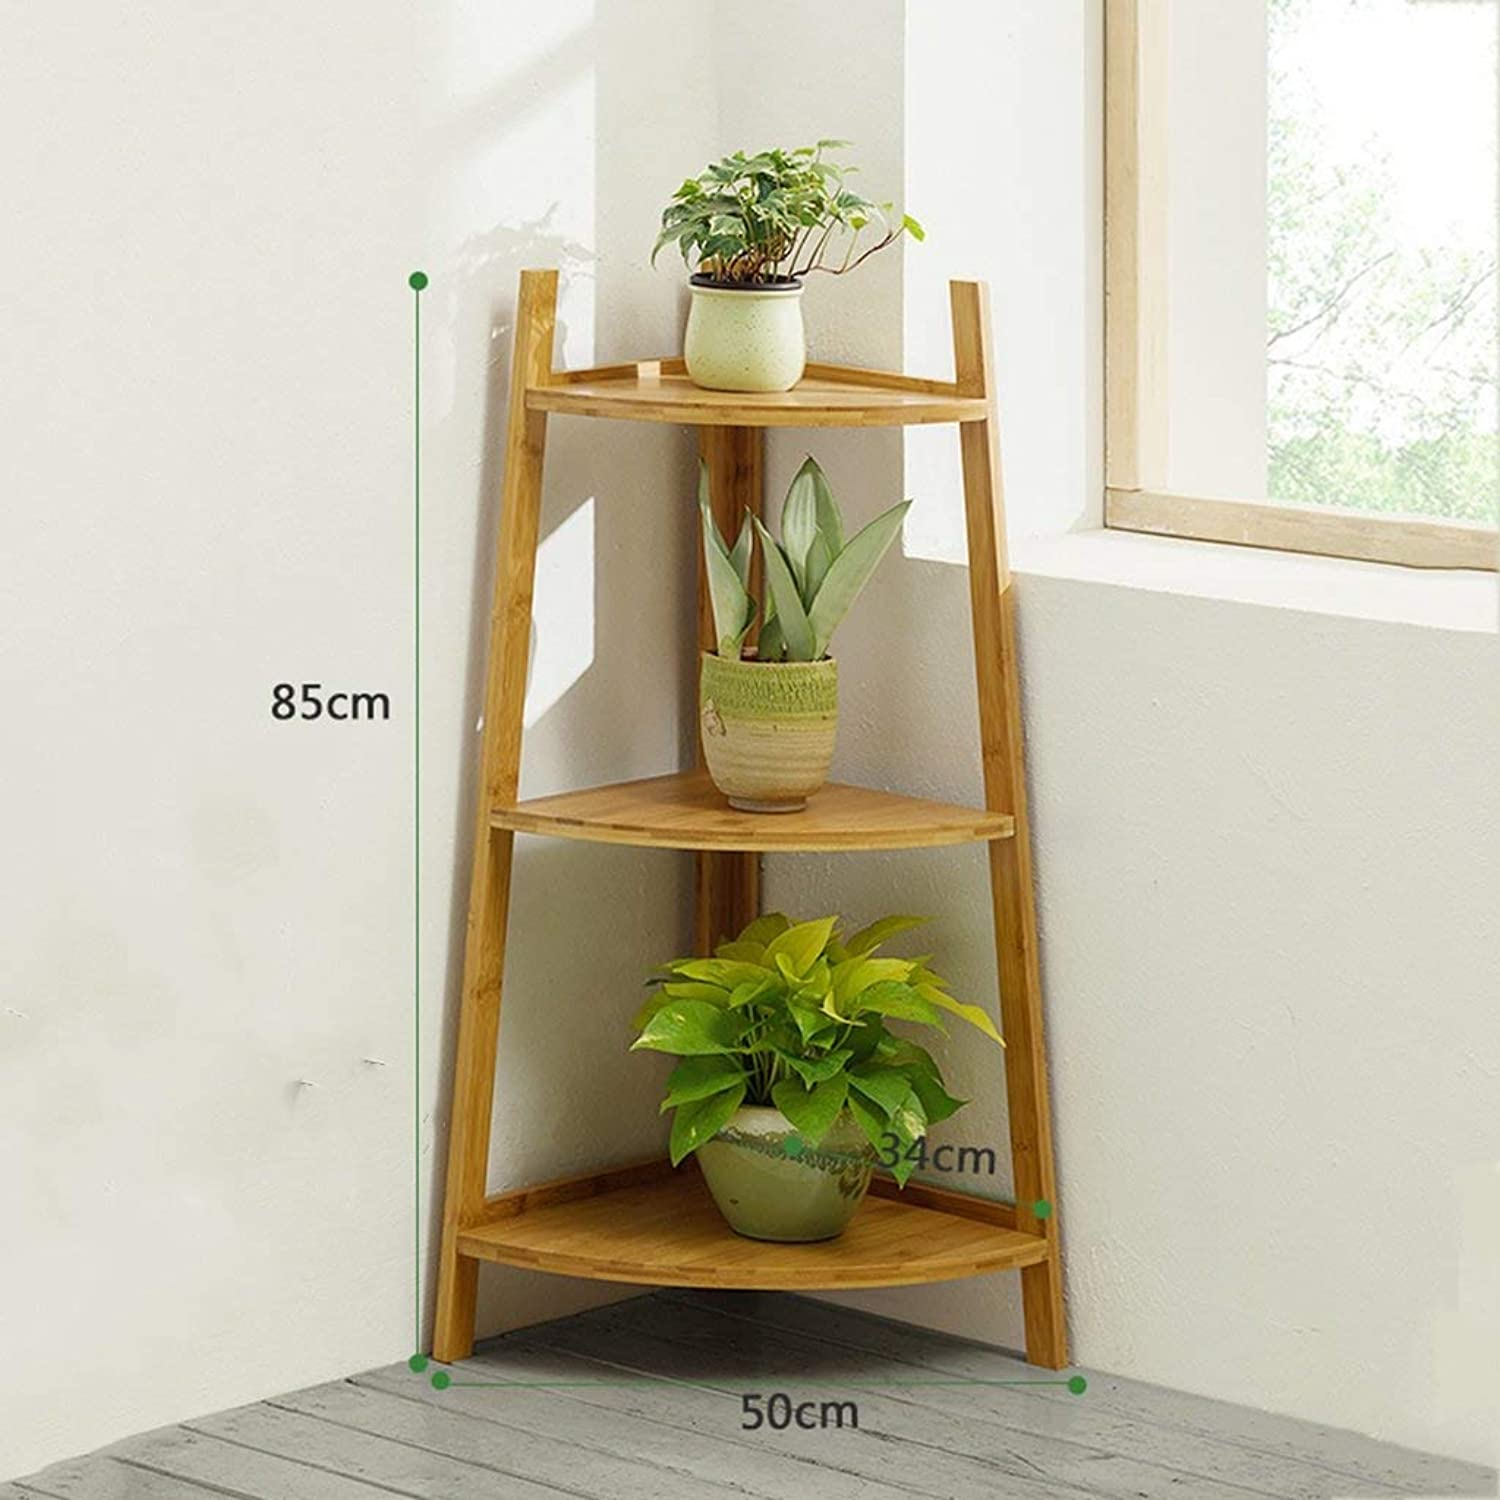 JZX Flower Stand, Bamboo Frame, Floor-Standing Multifunctional Plant Stand